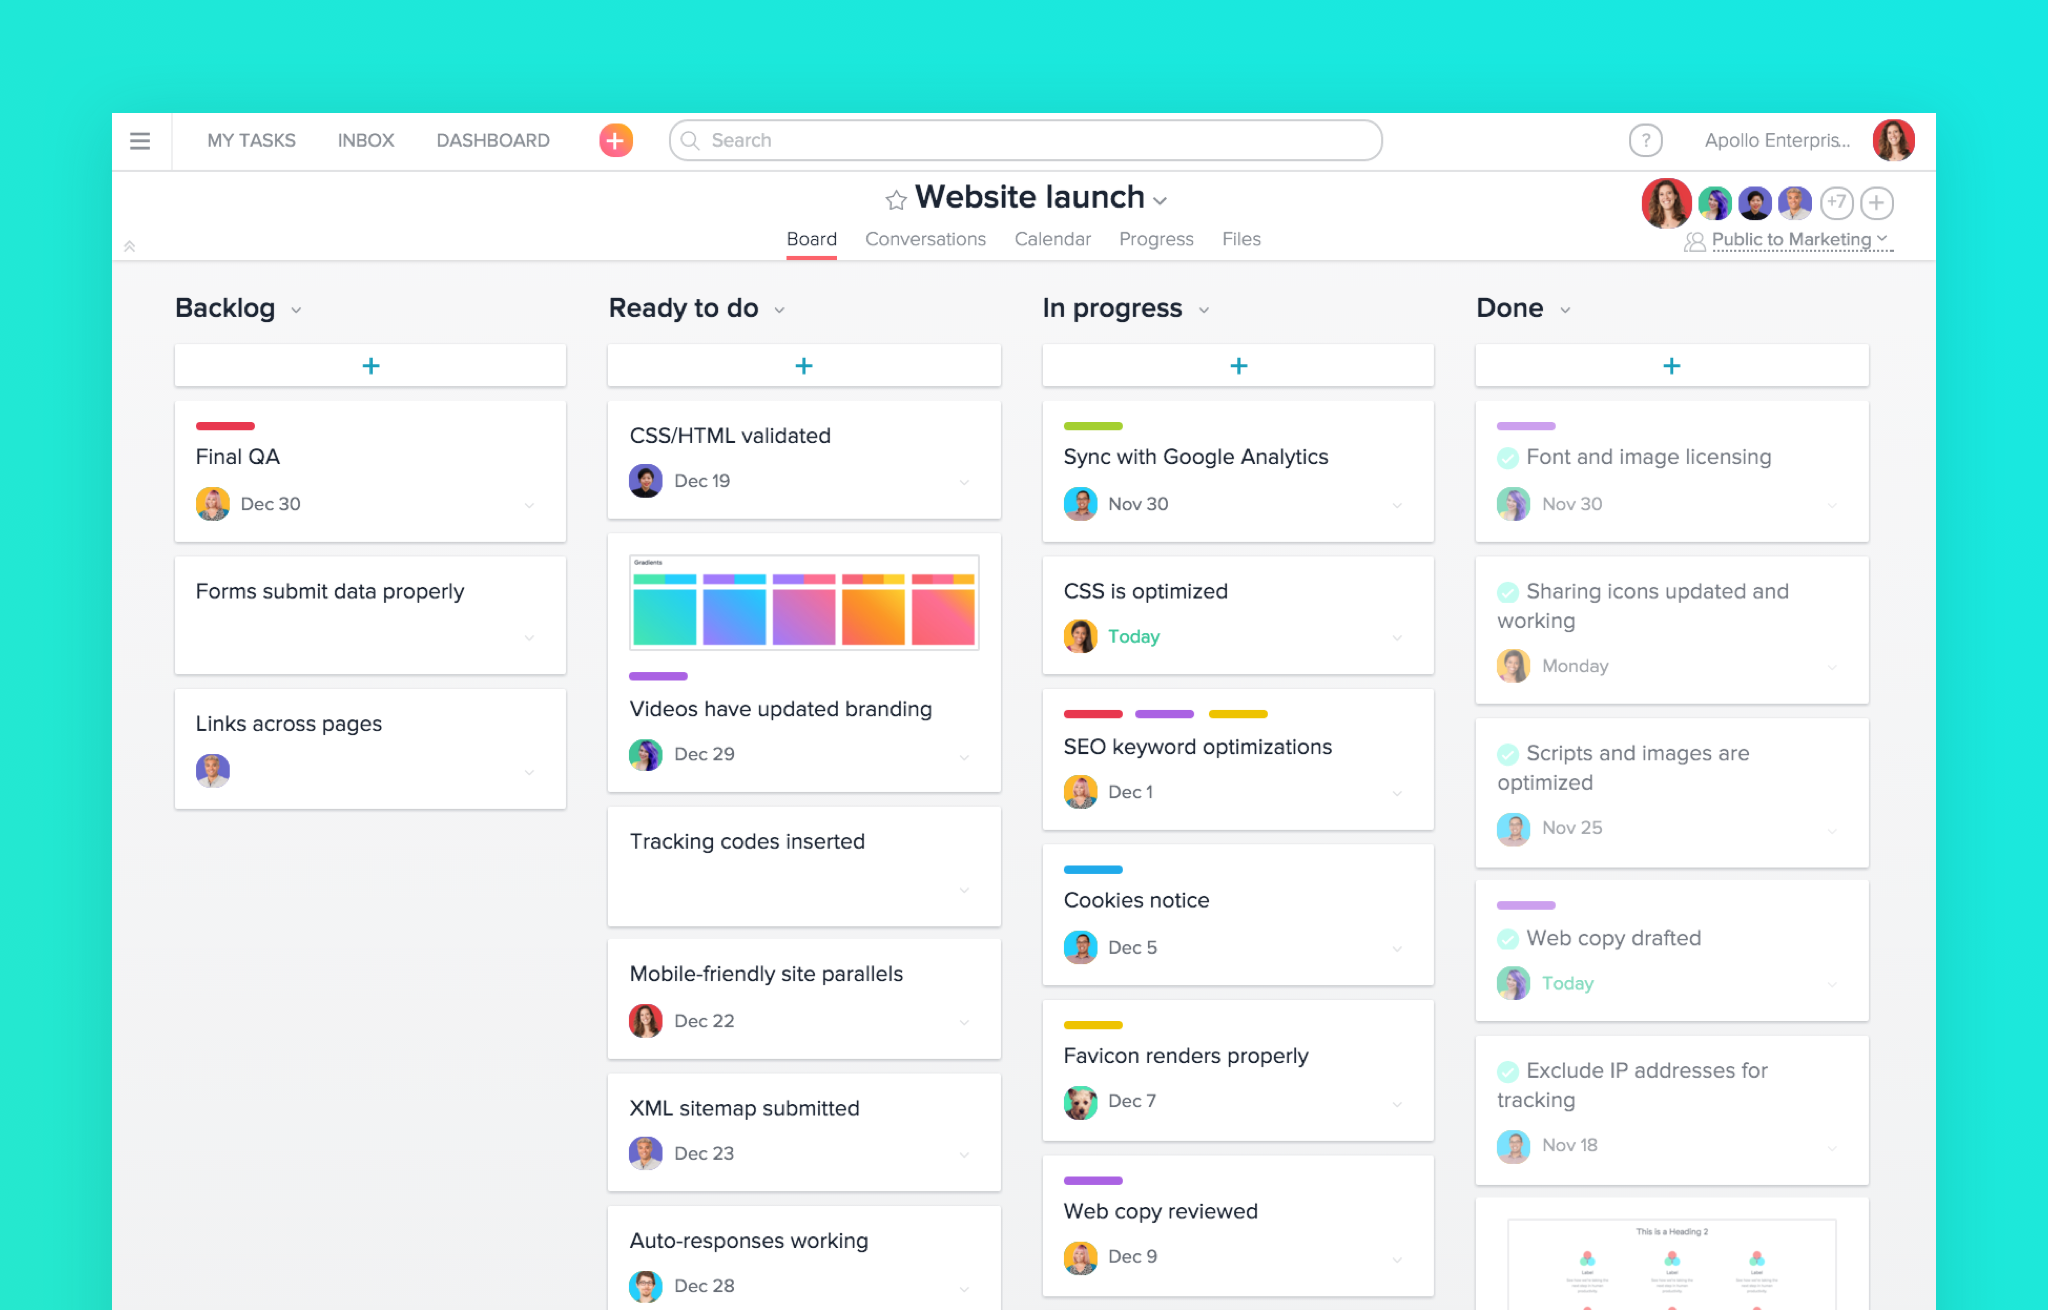 Asana Boards for Project Managment and Daily Tasks